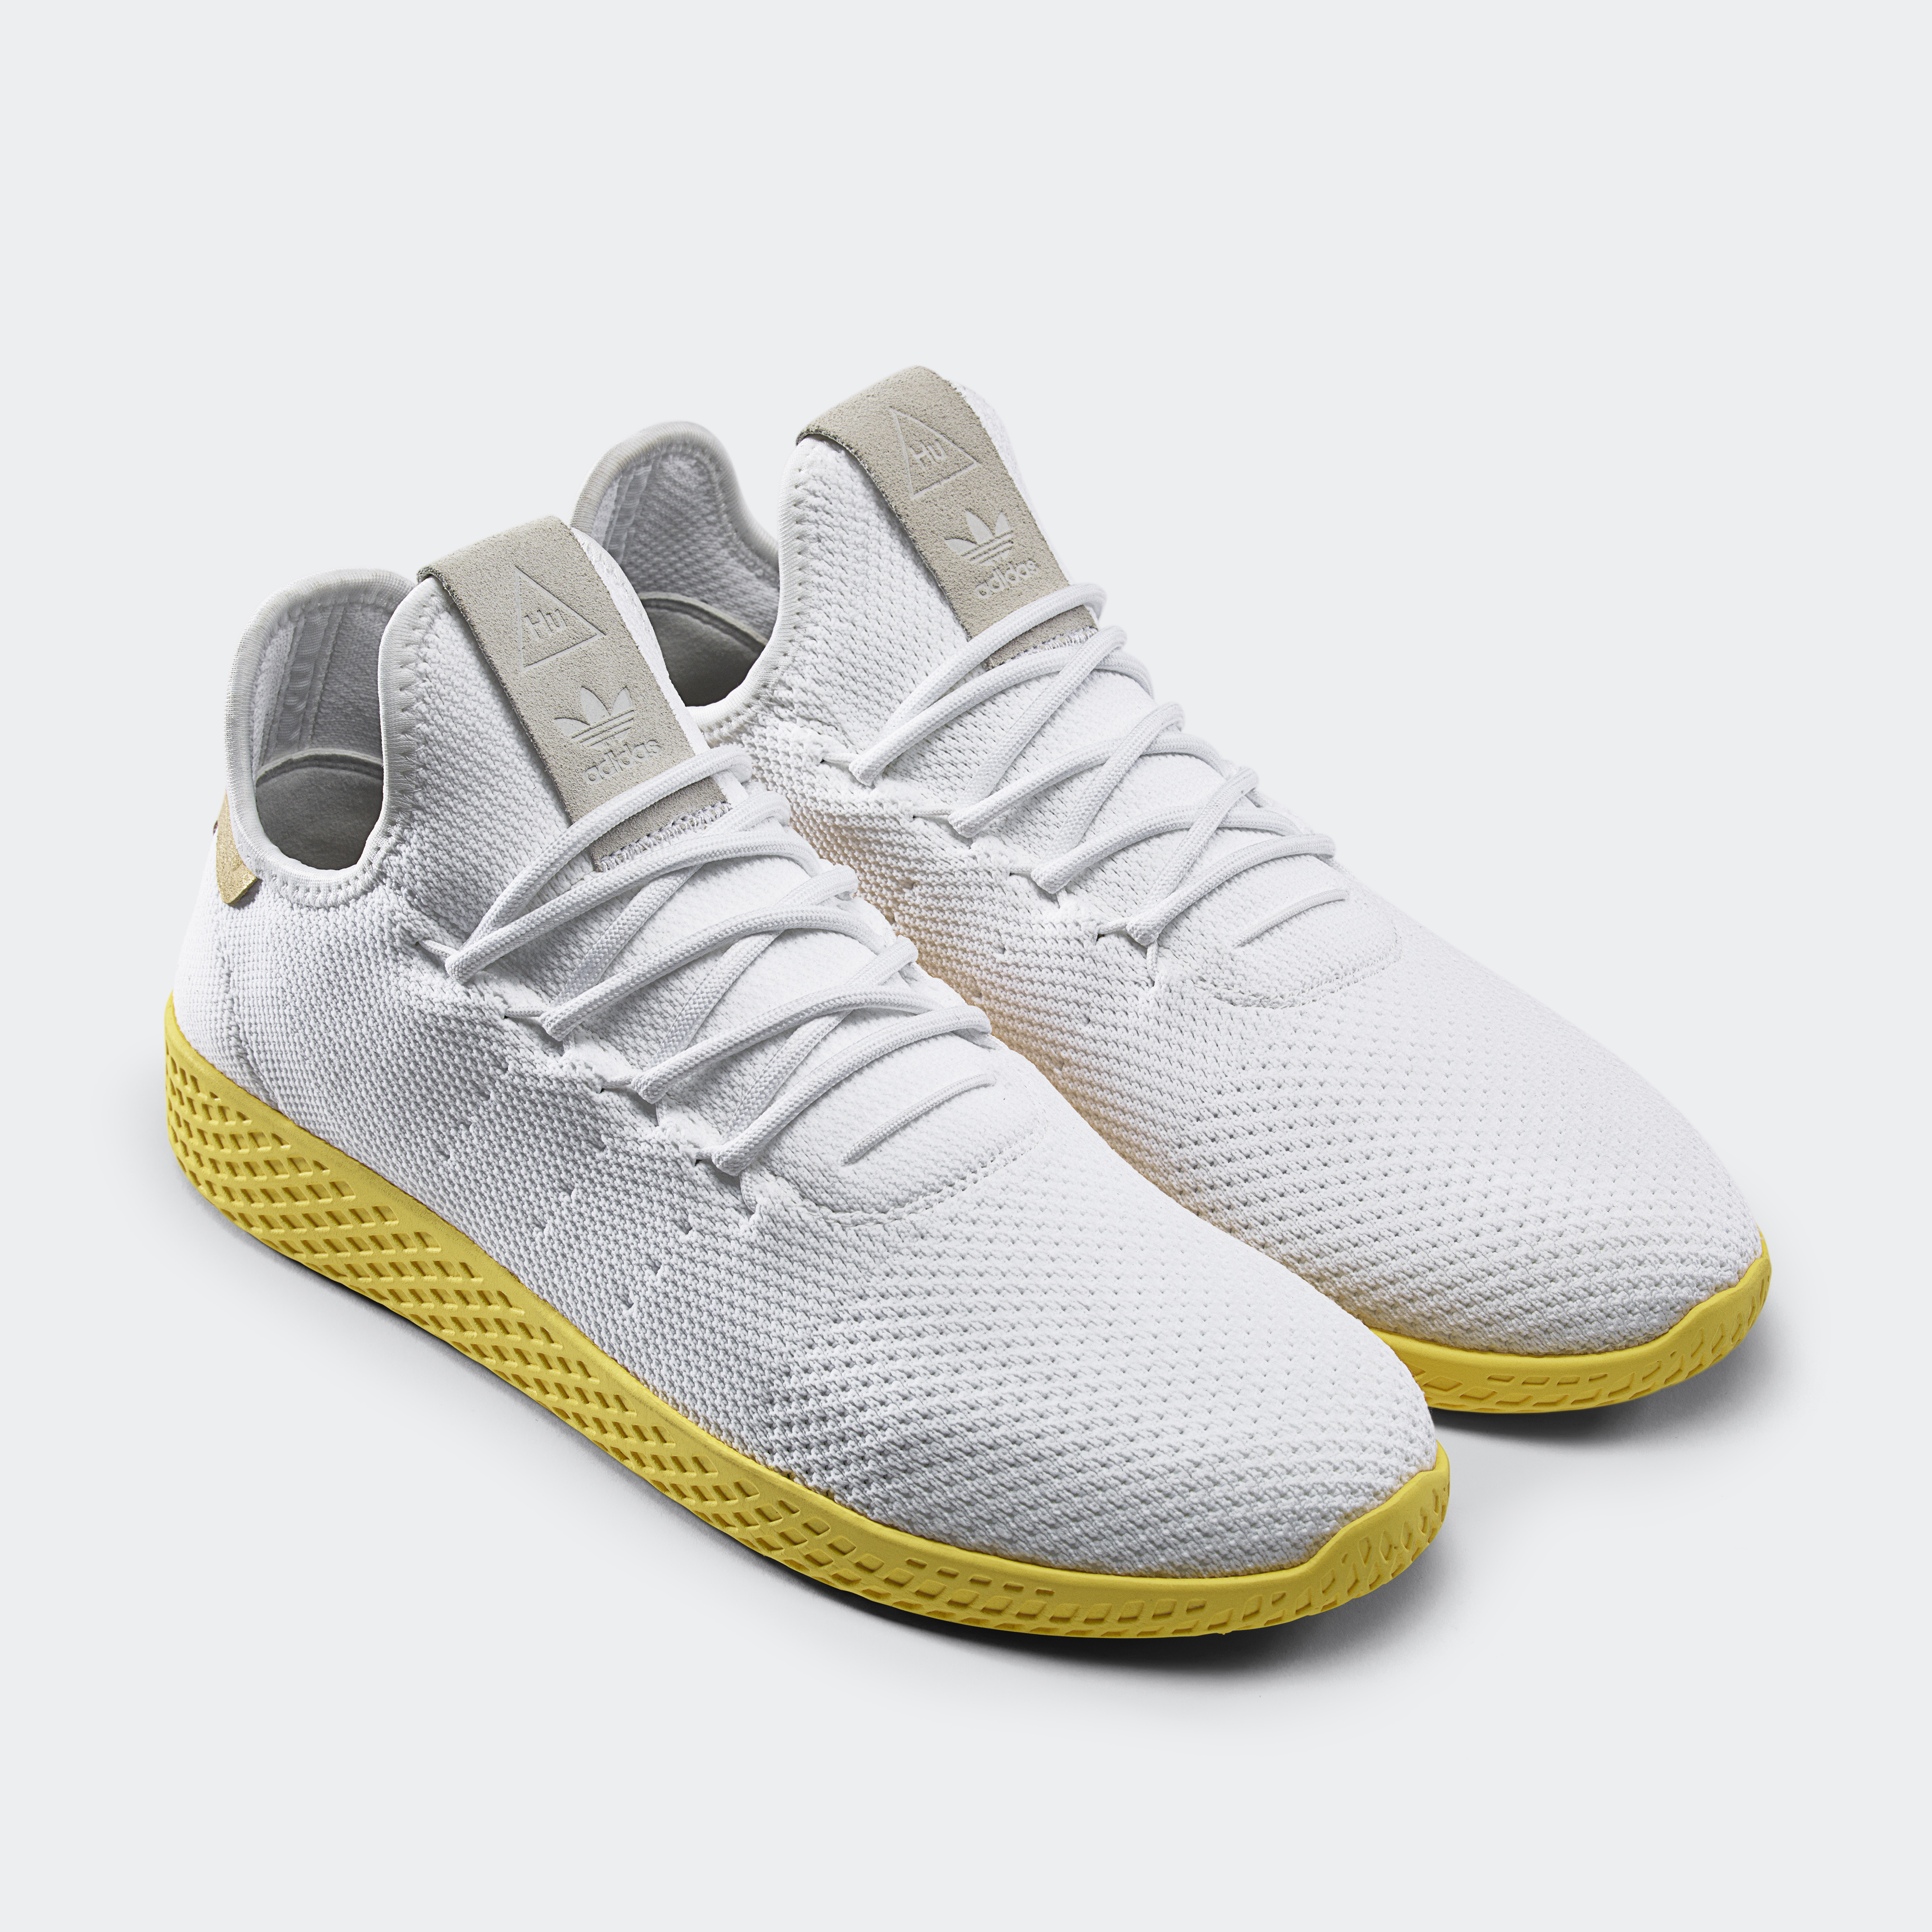 8d110bf882fb5 Adidas Originals x Pharrell Williams   Tennis Hu